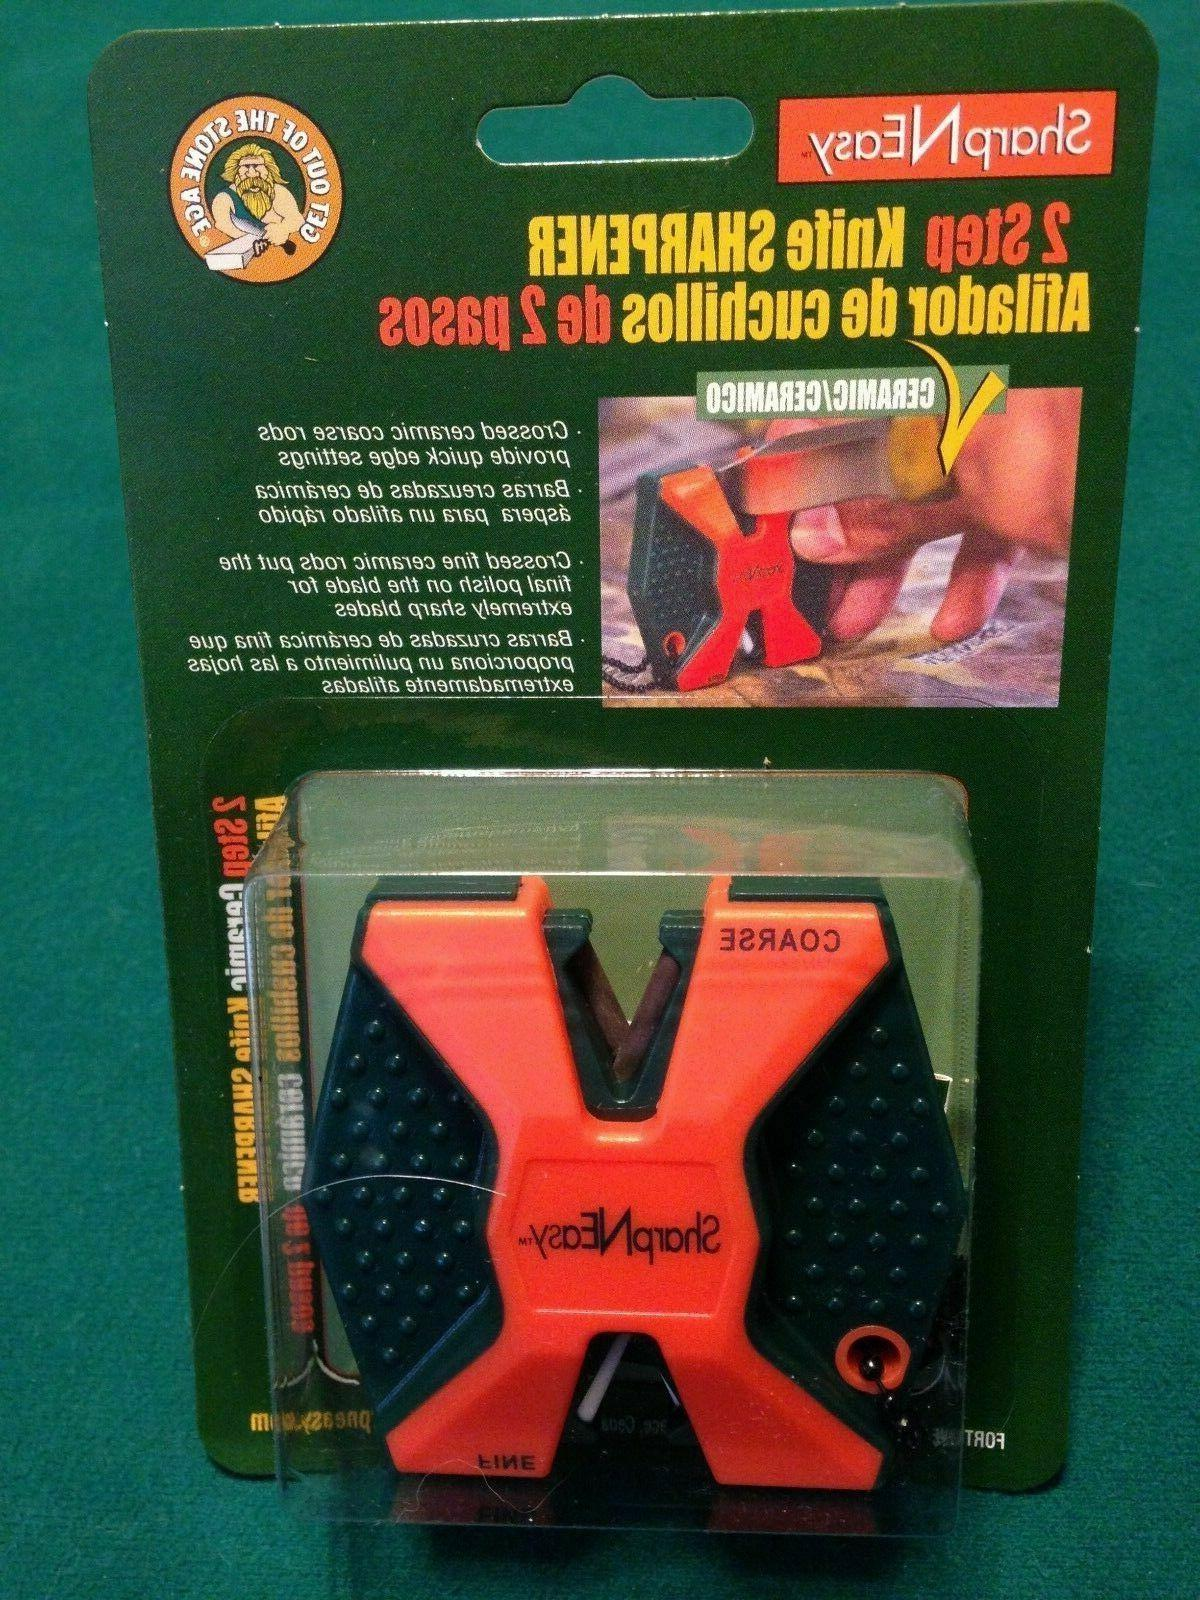 fortune products orange sharp n easy knife